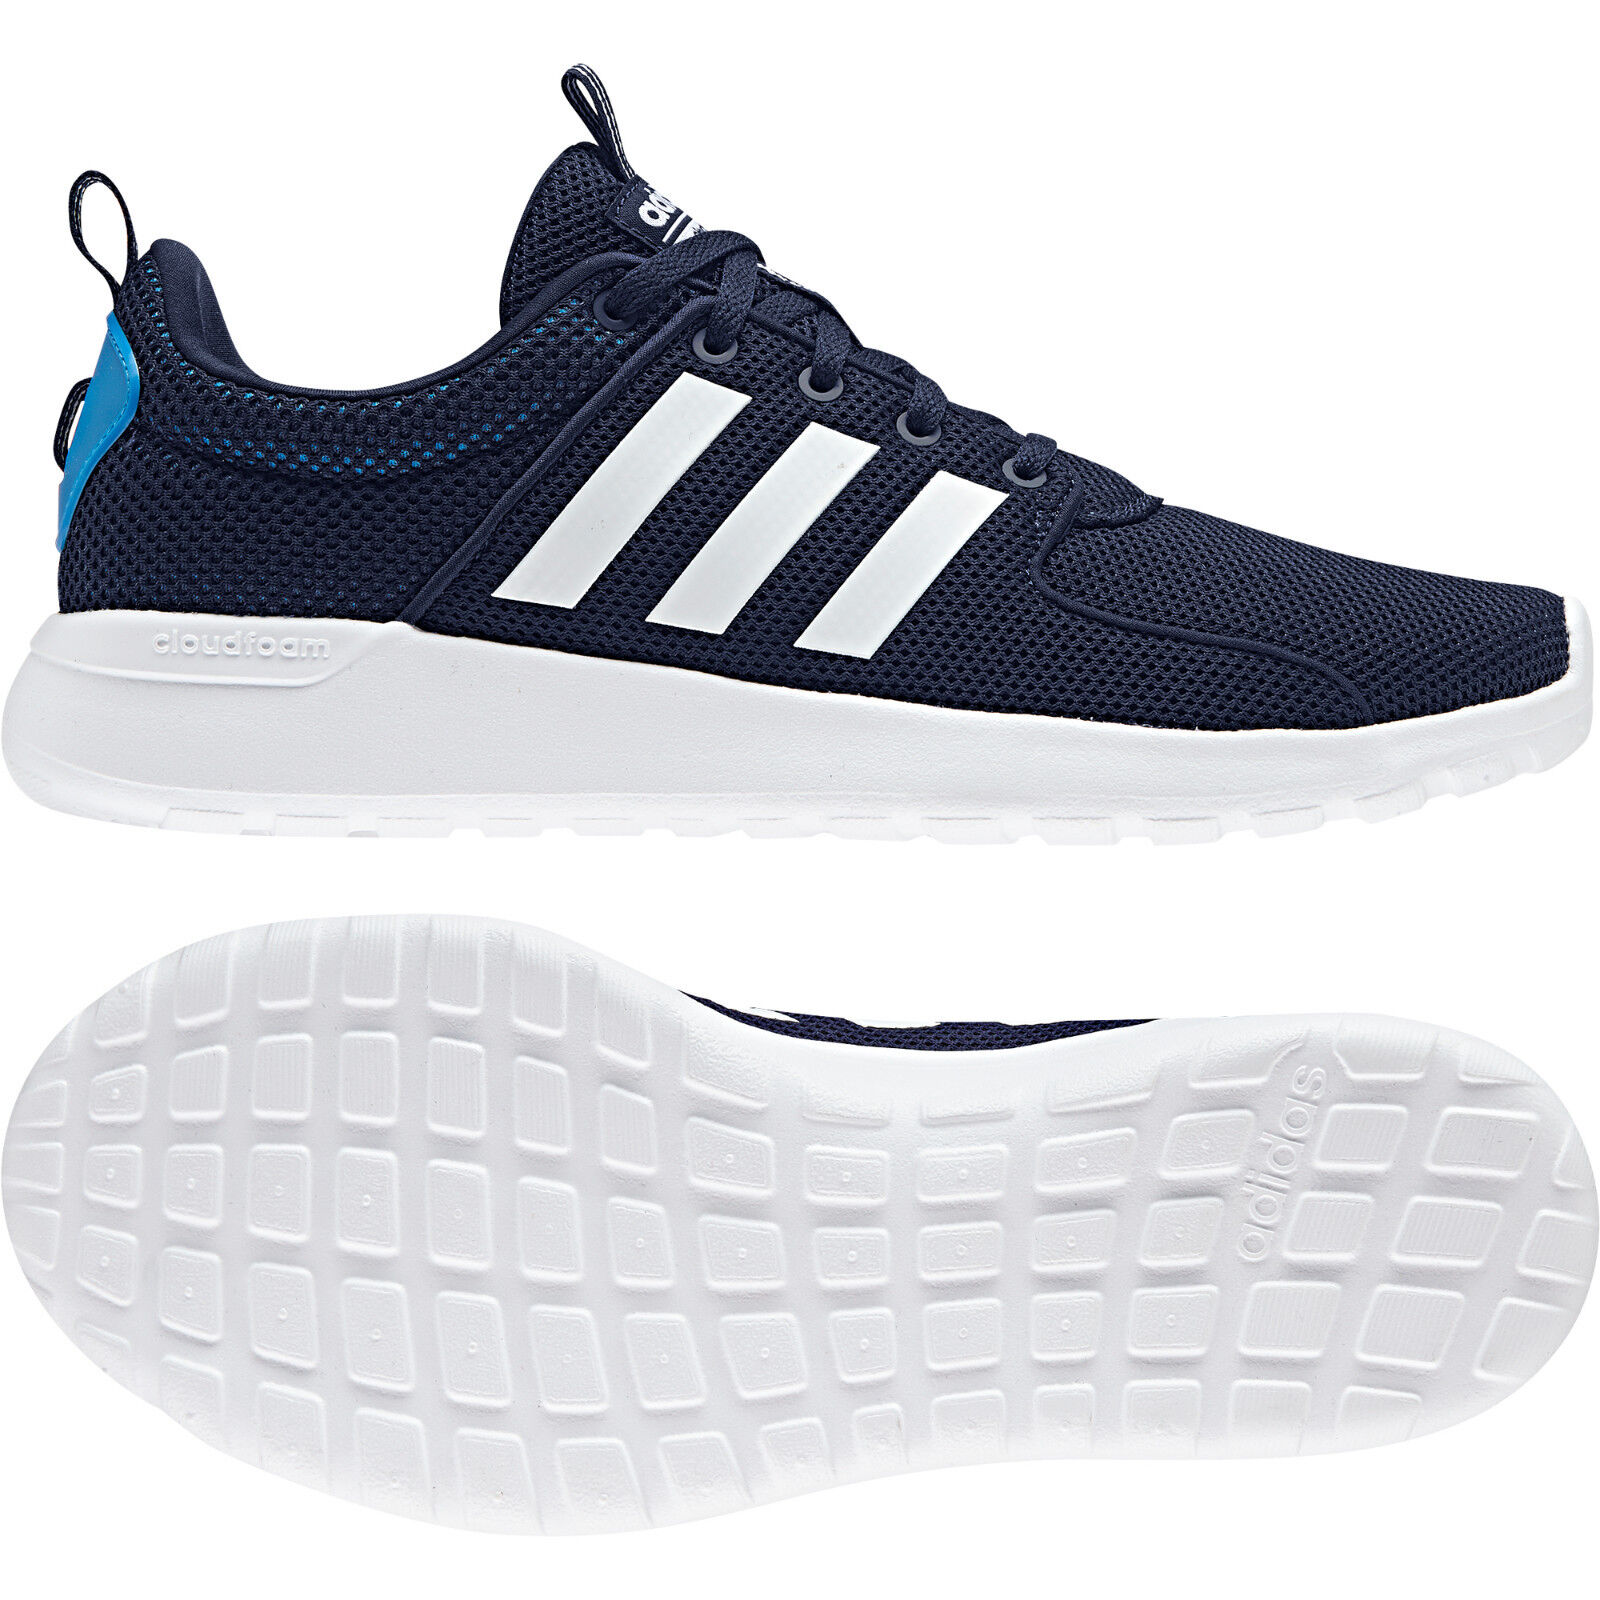 Adidas hommes Chaussures CF Lite Racer Training Fitness B42167 Trainers Road Running